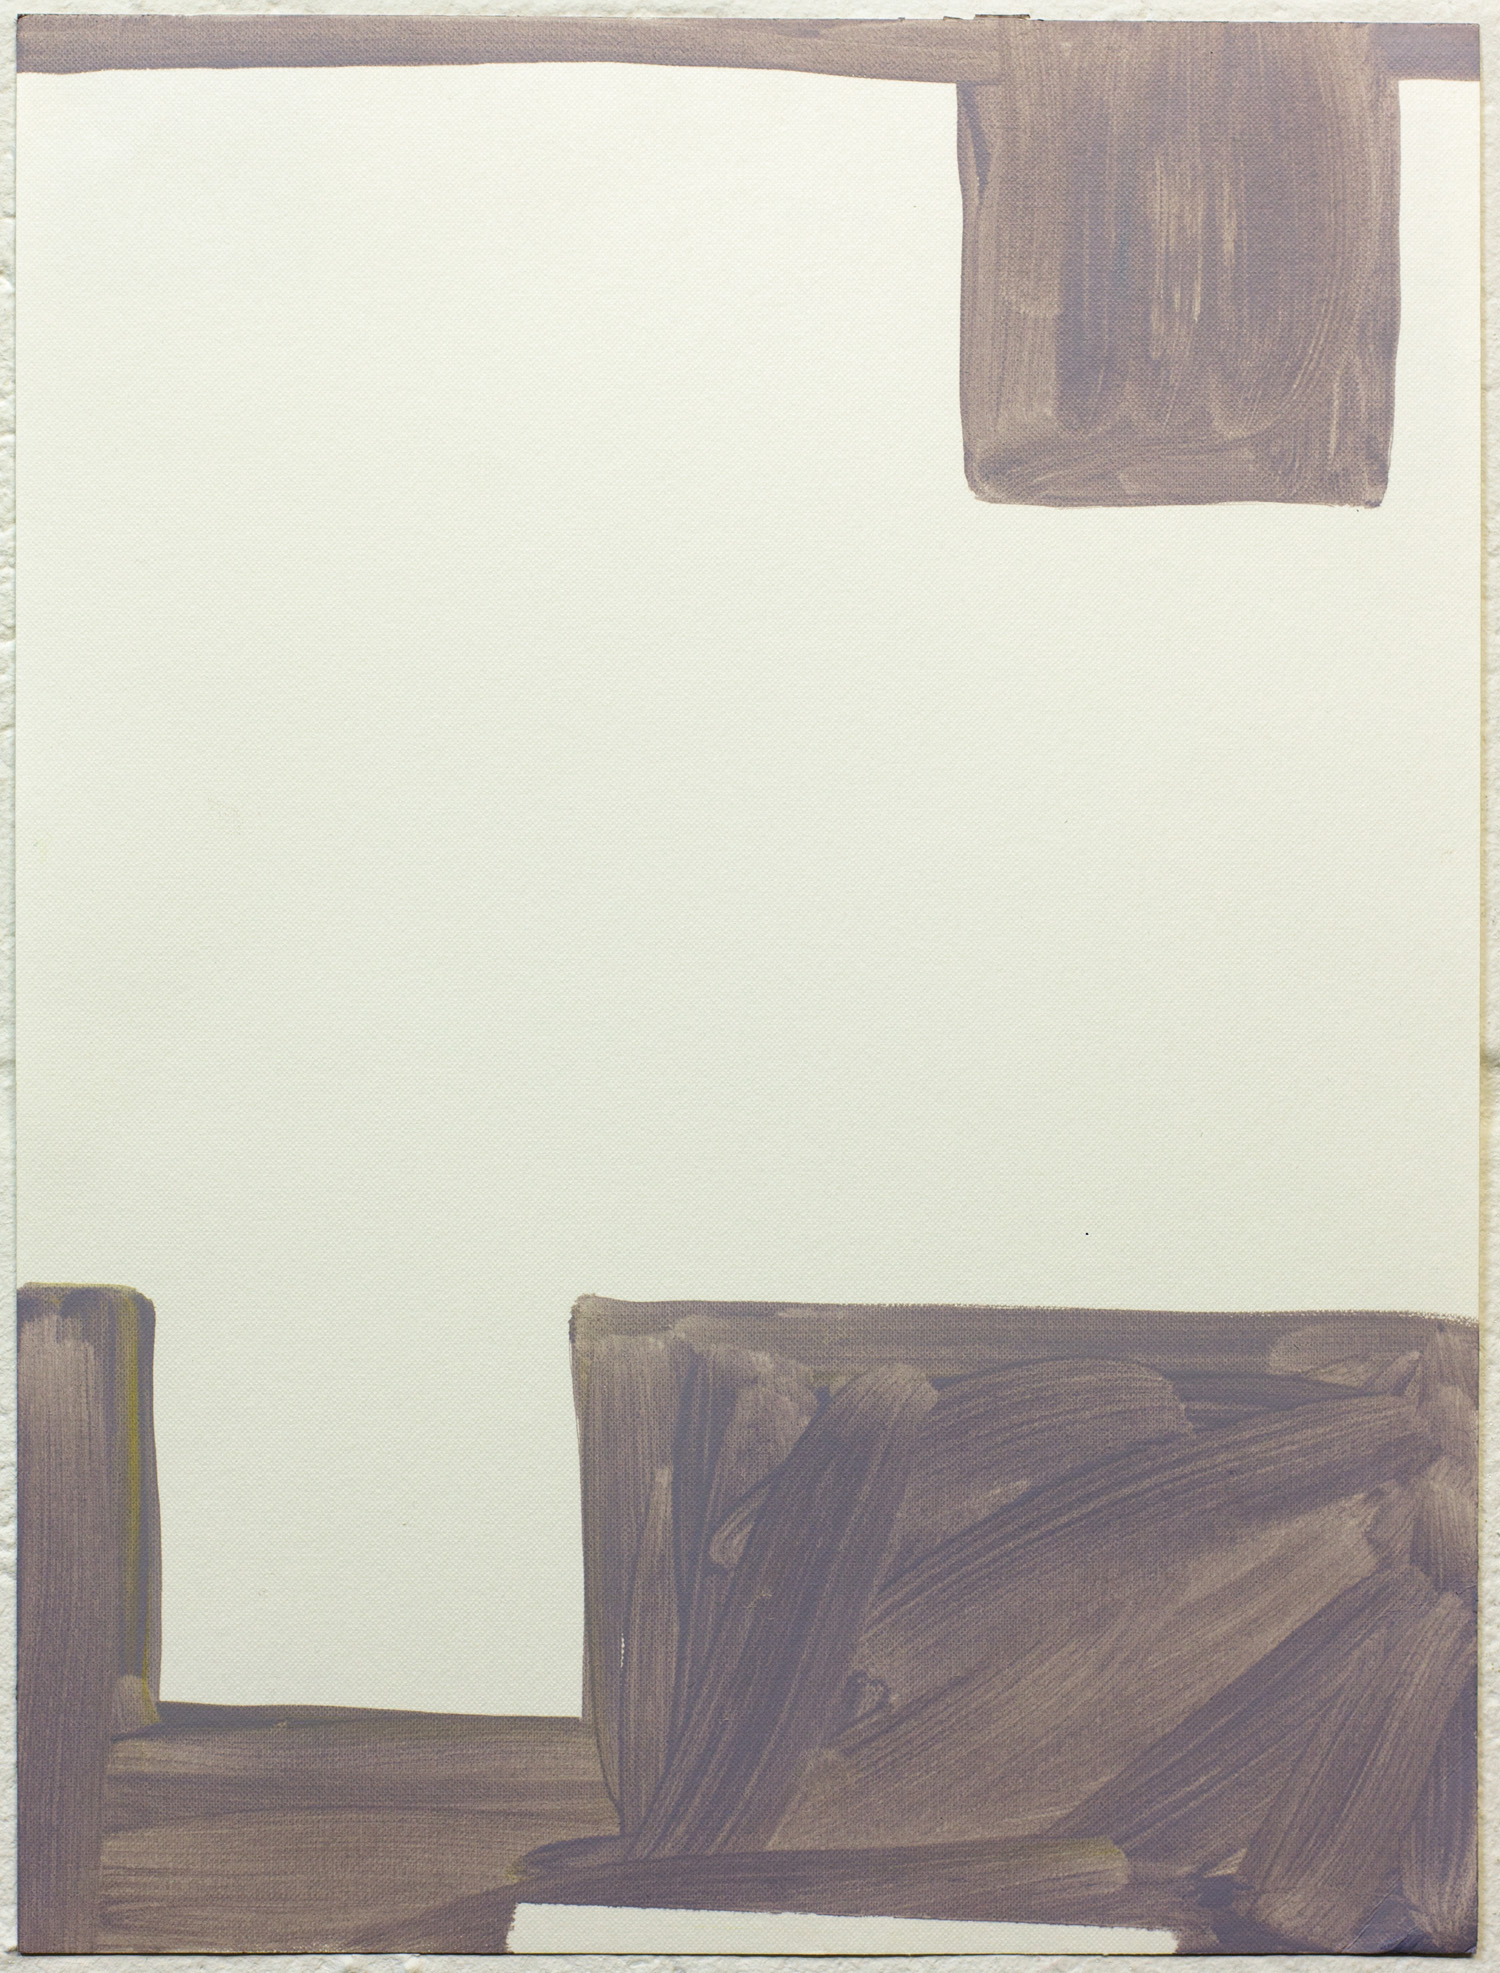 Untitled 2014  Oil on paper  40 x 30 cm